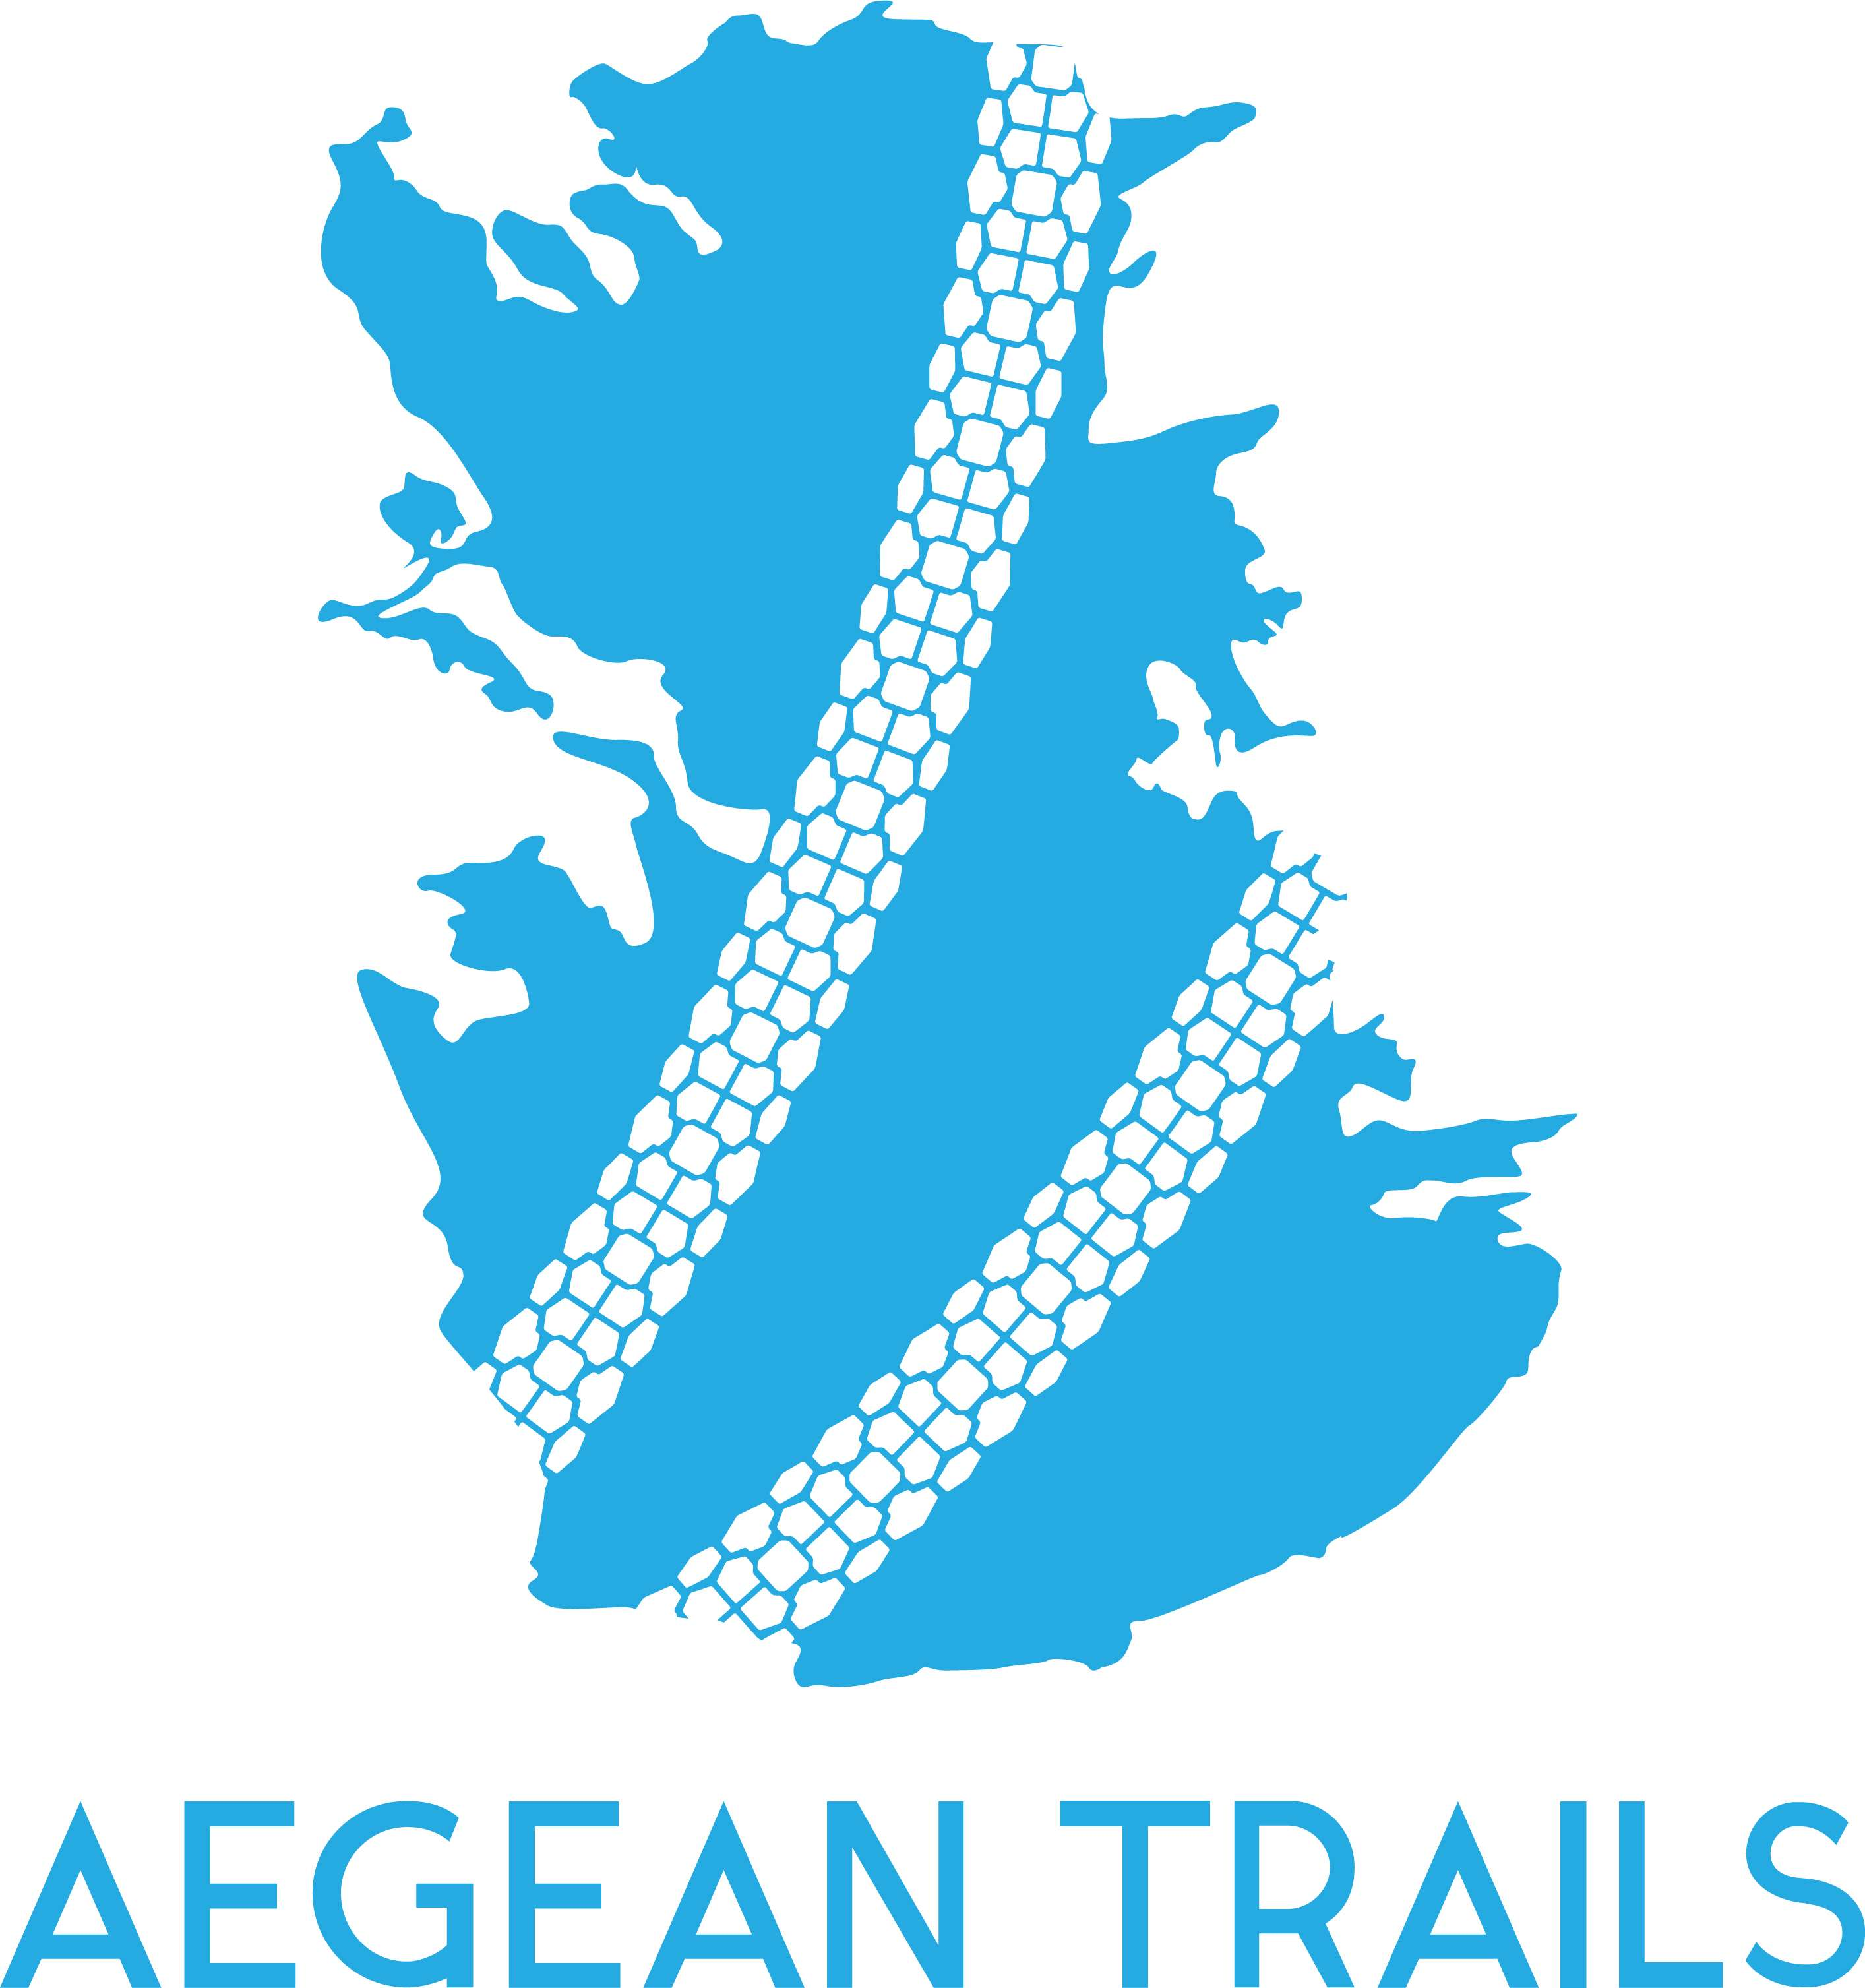 Aegean trails logo final version 1